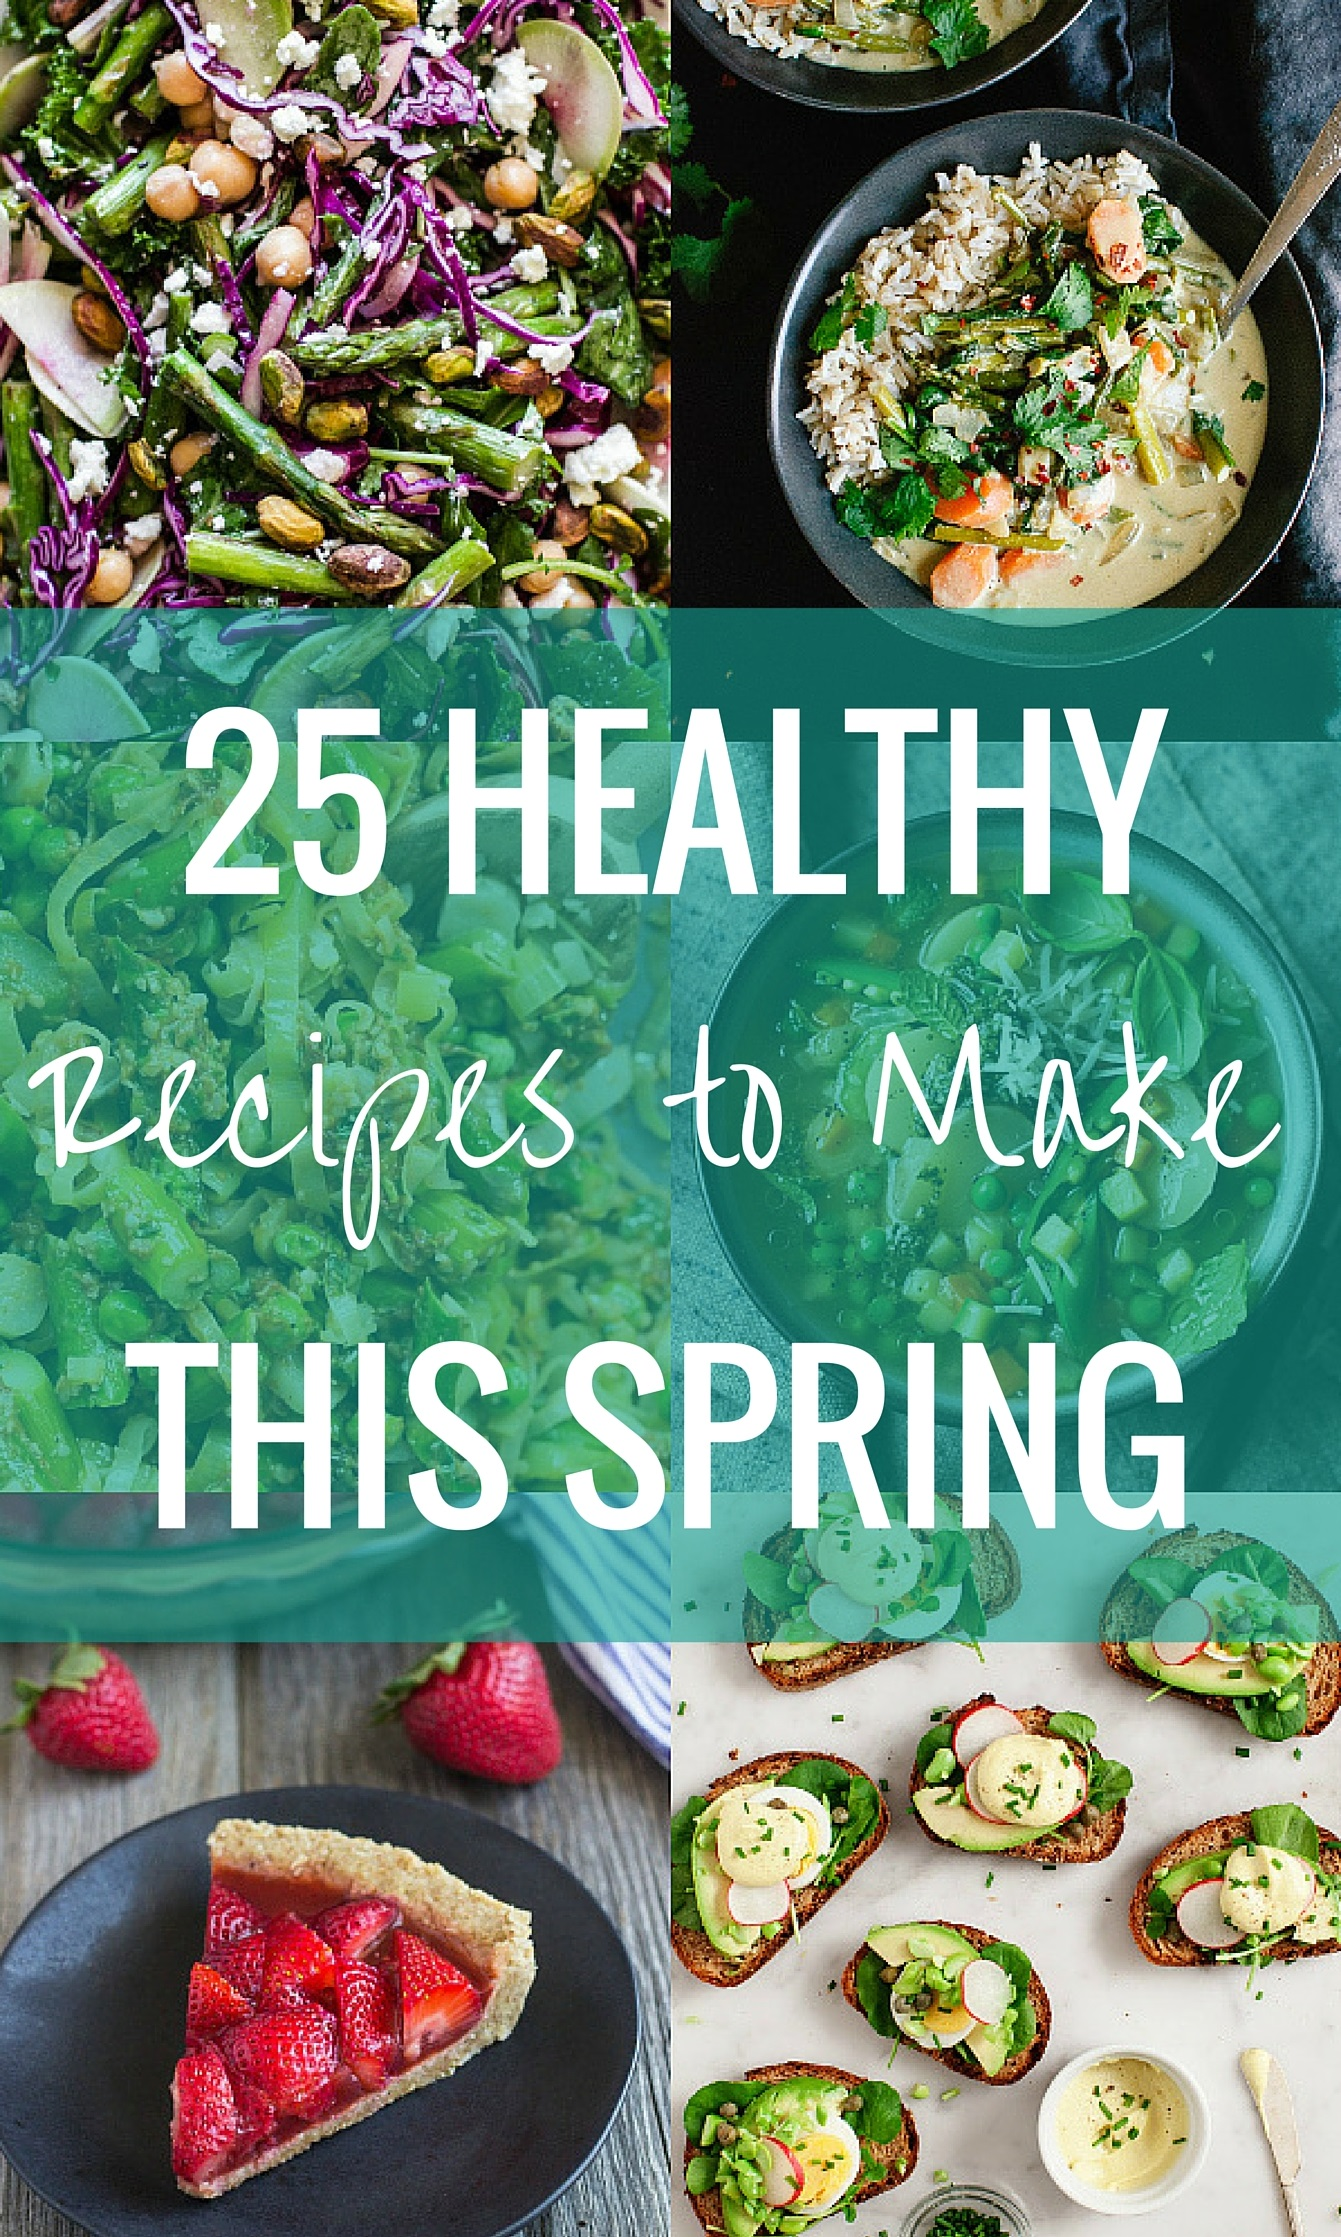 25 Healthy Recipes to Make This Spring